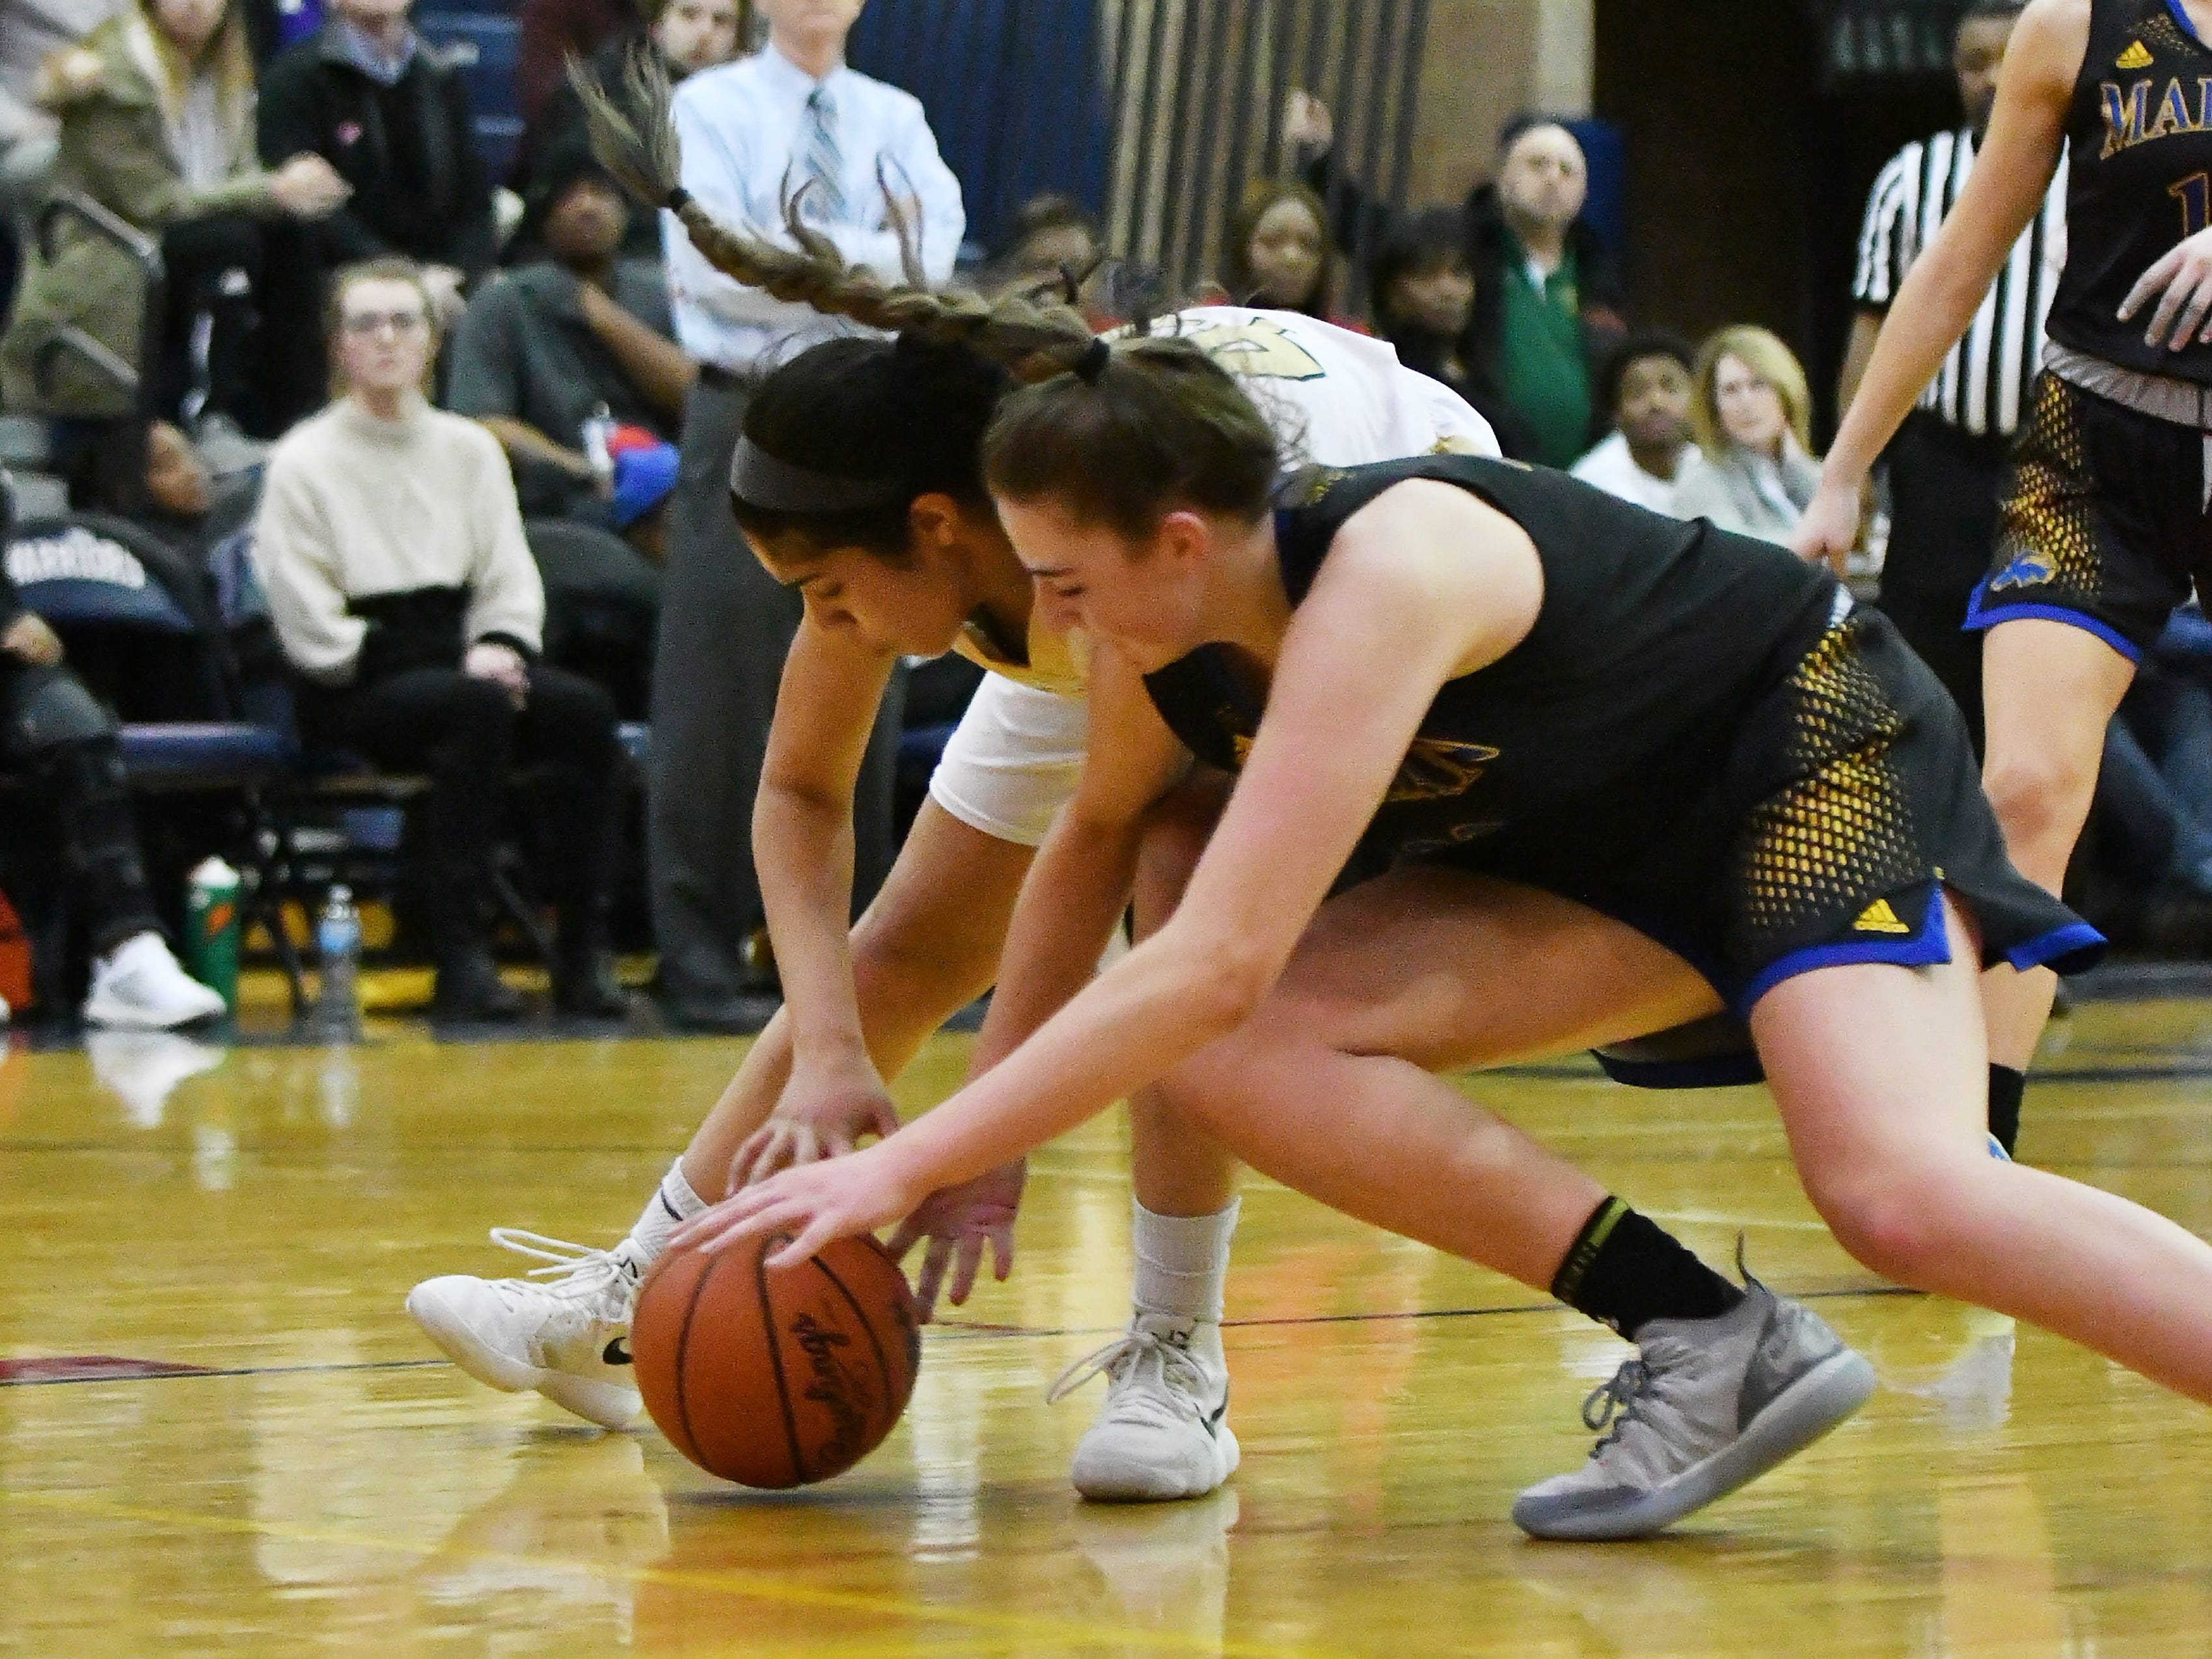 Marian's Lauren Licari and Grosse Pointe North's Christina Braker, rear, in the second half.